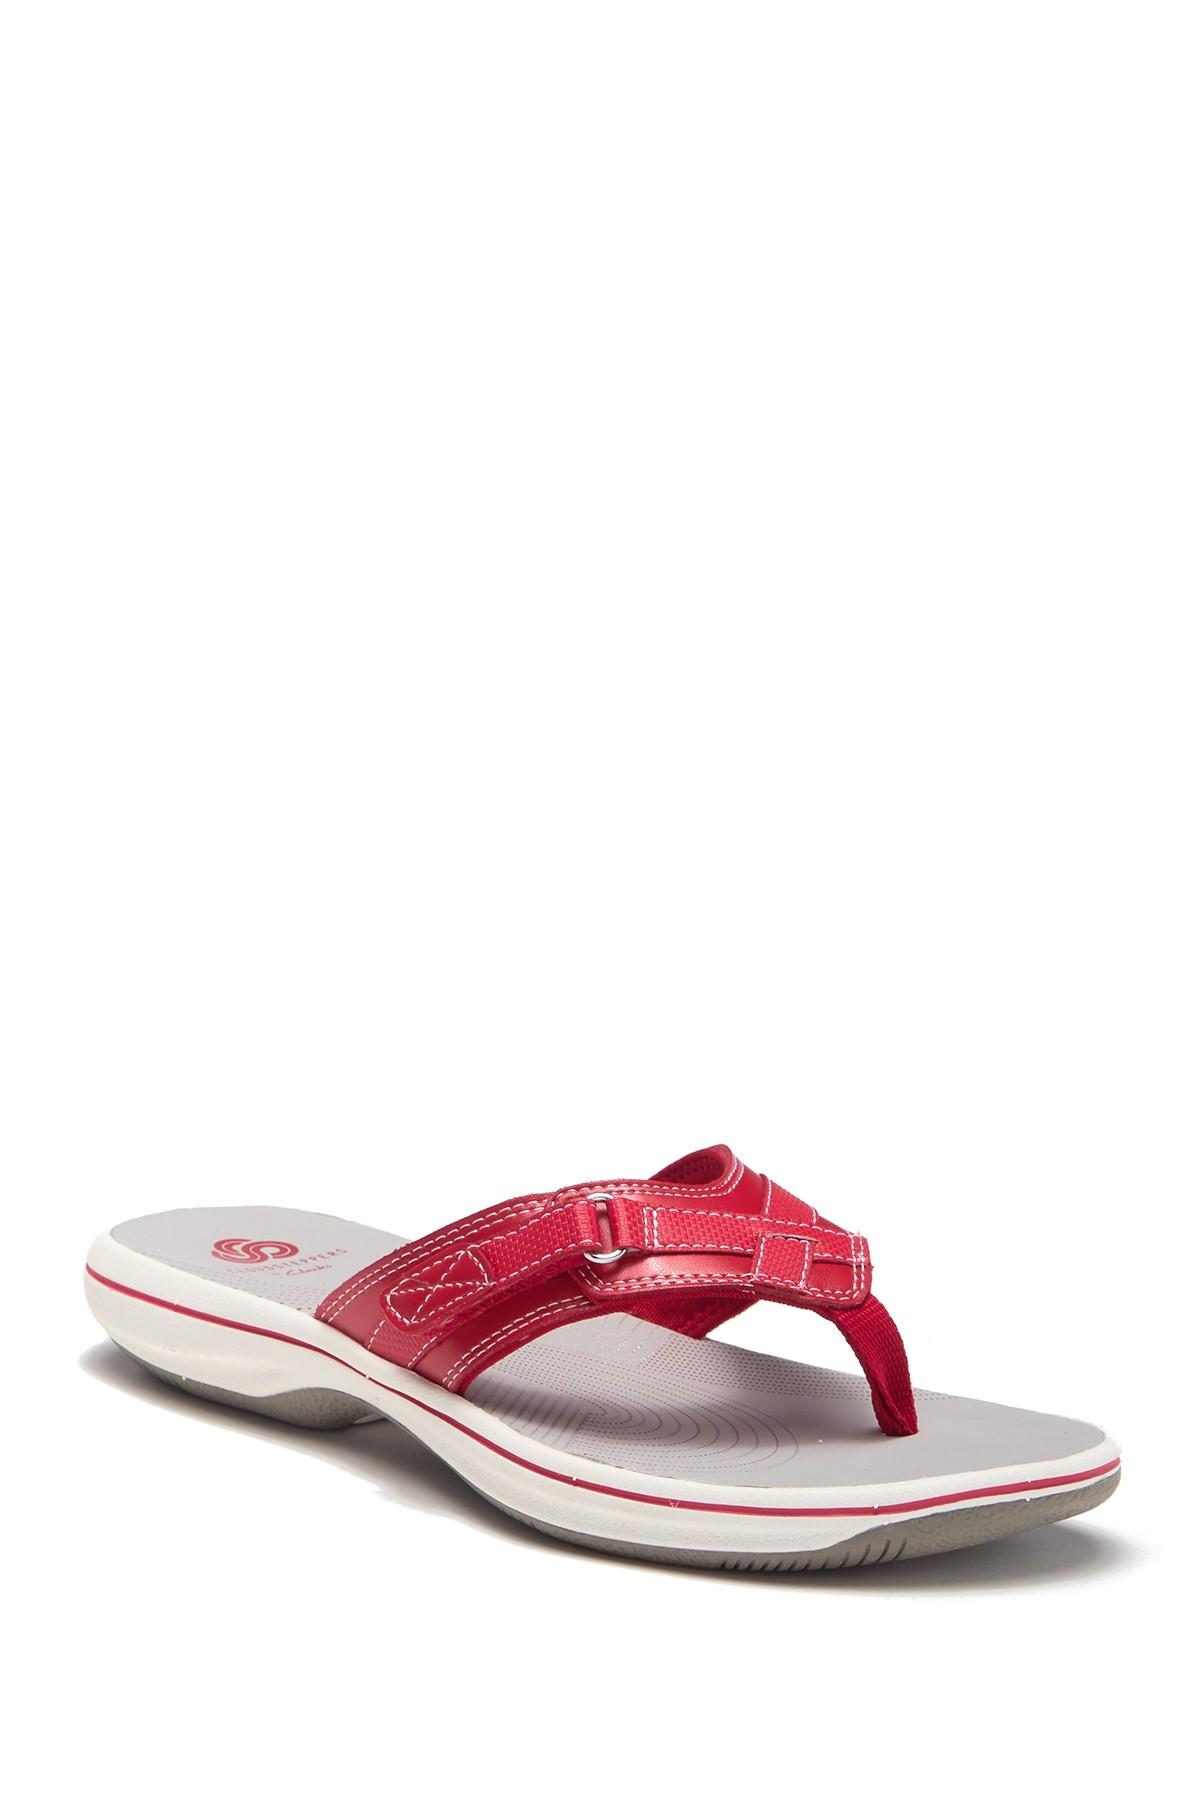 45a14f65efc Lyst - Clarks Breeze Sea Sandal in Red - Save 61%